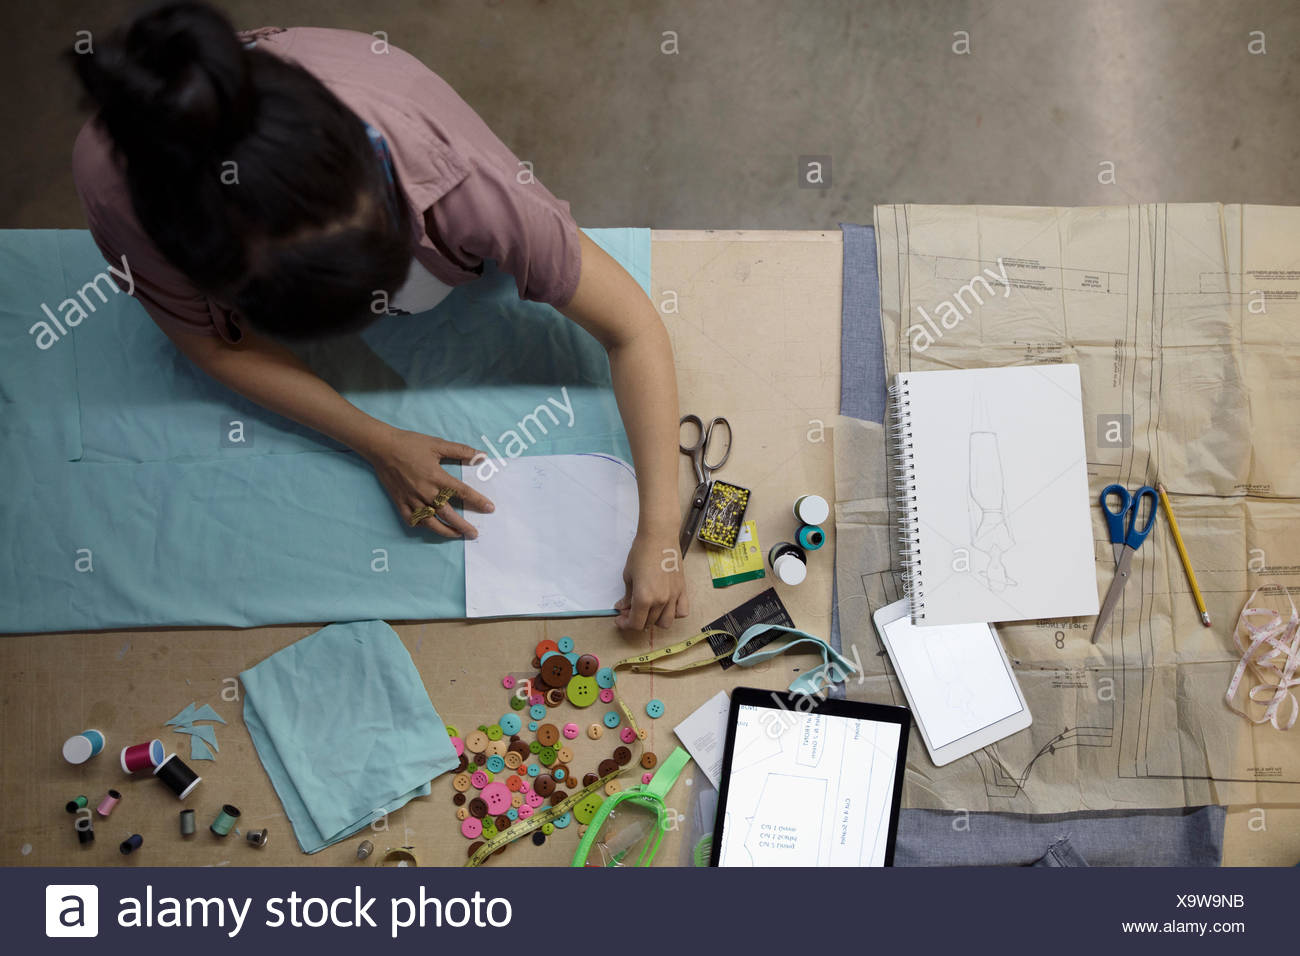 Overhead view female fashion designer cutting fabric in workshop Stock Photo